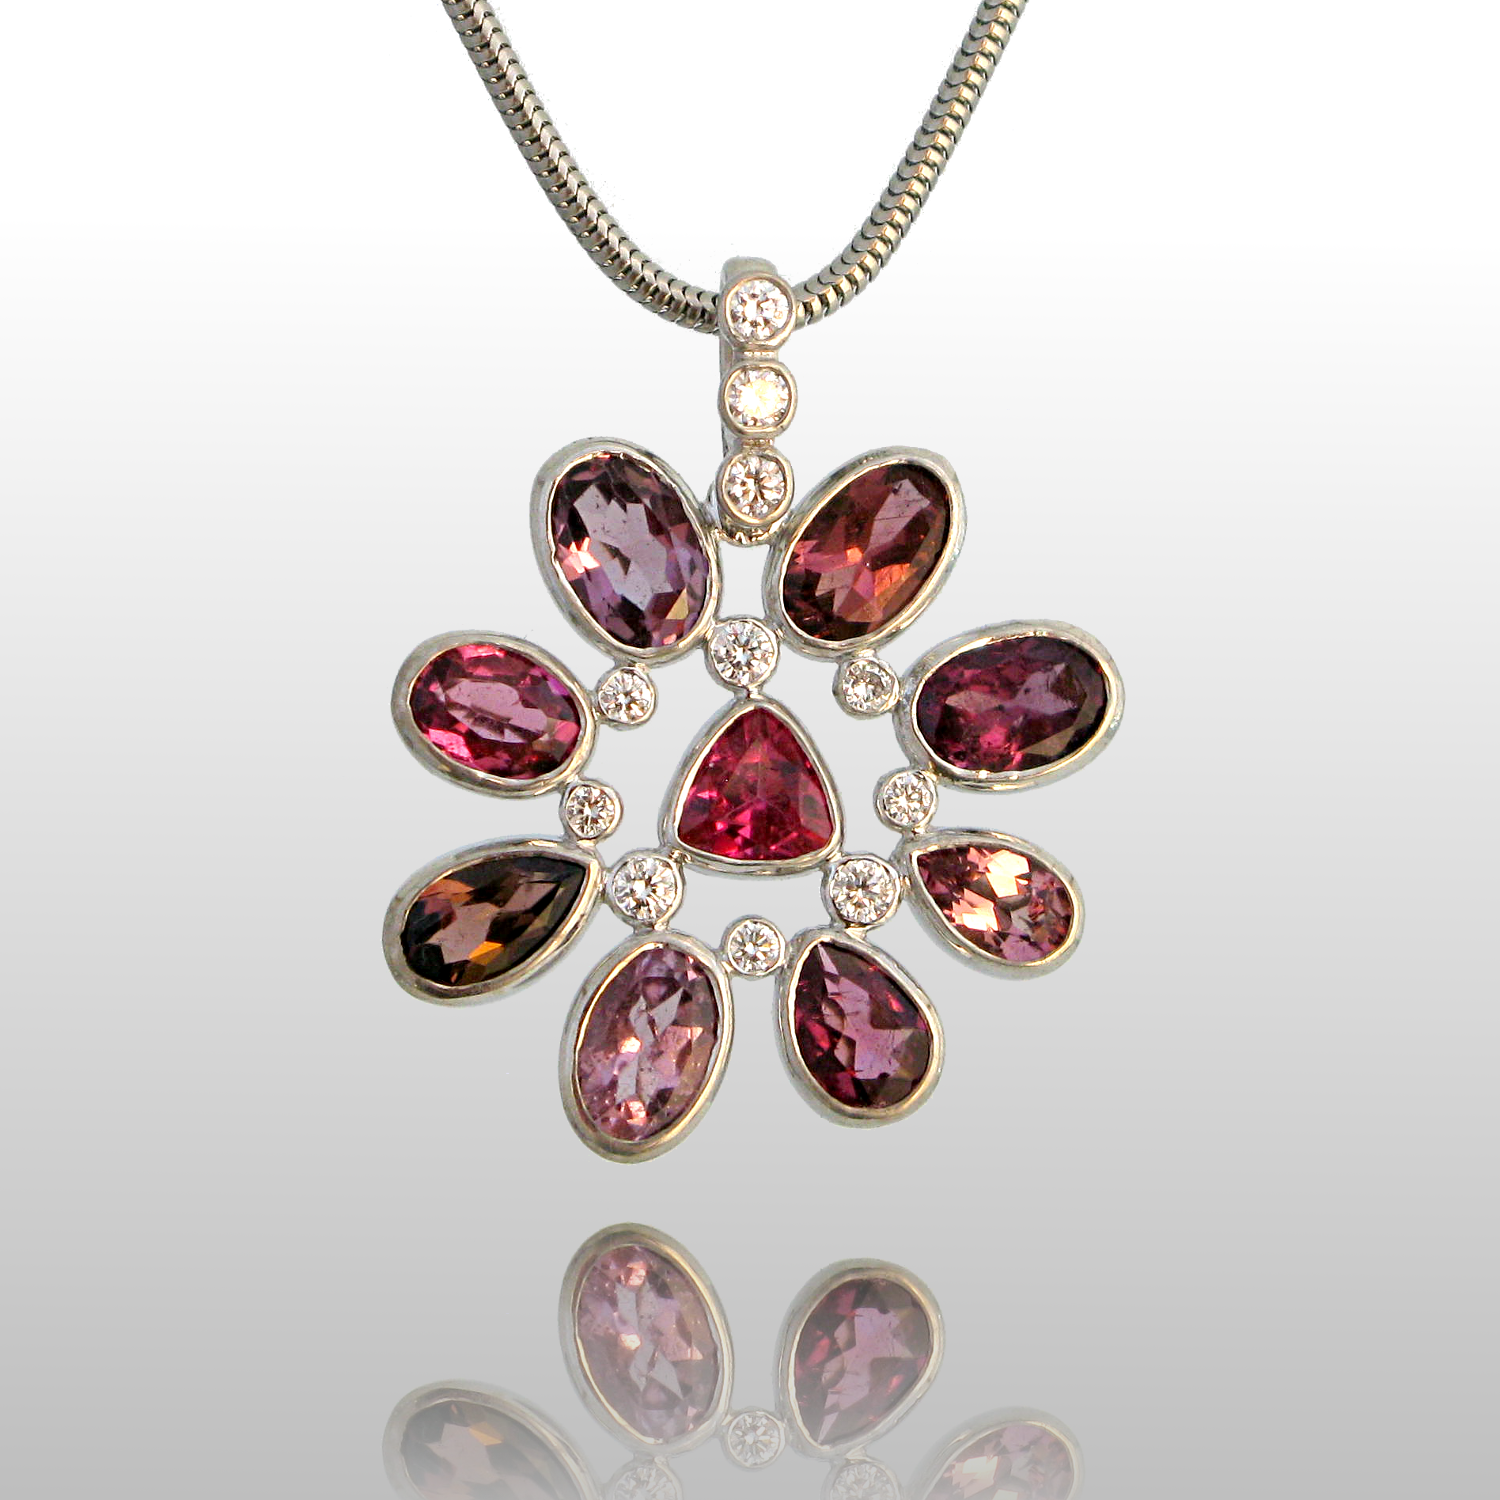 Pink Tourmaline Necklace 'Kaleidoscope' in 18k White Gold with Diamonds by Pratima Design Fine Art Jewelry